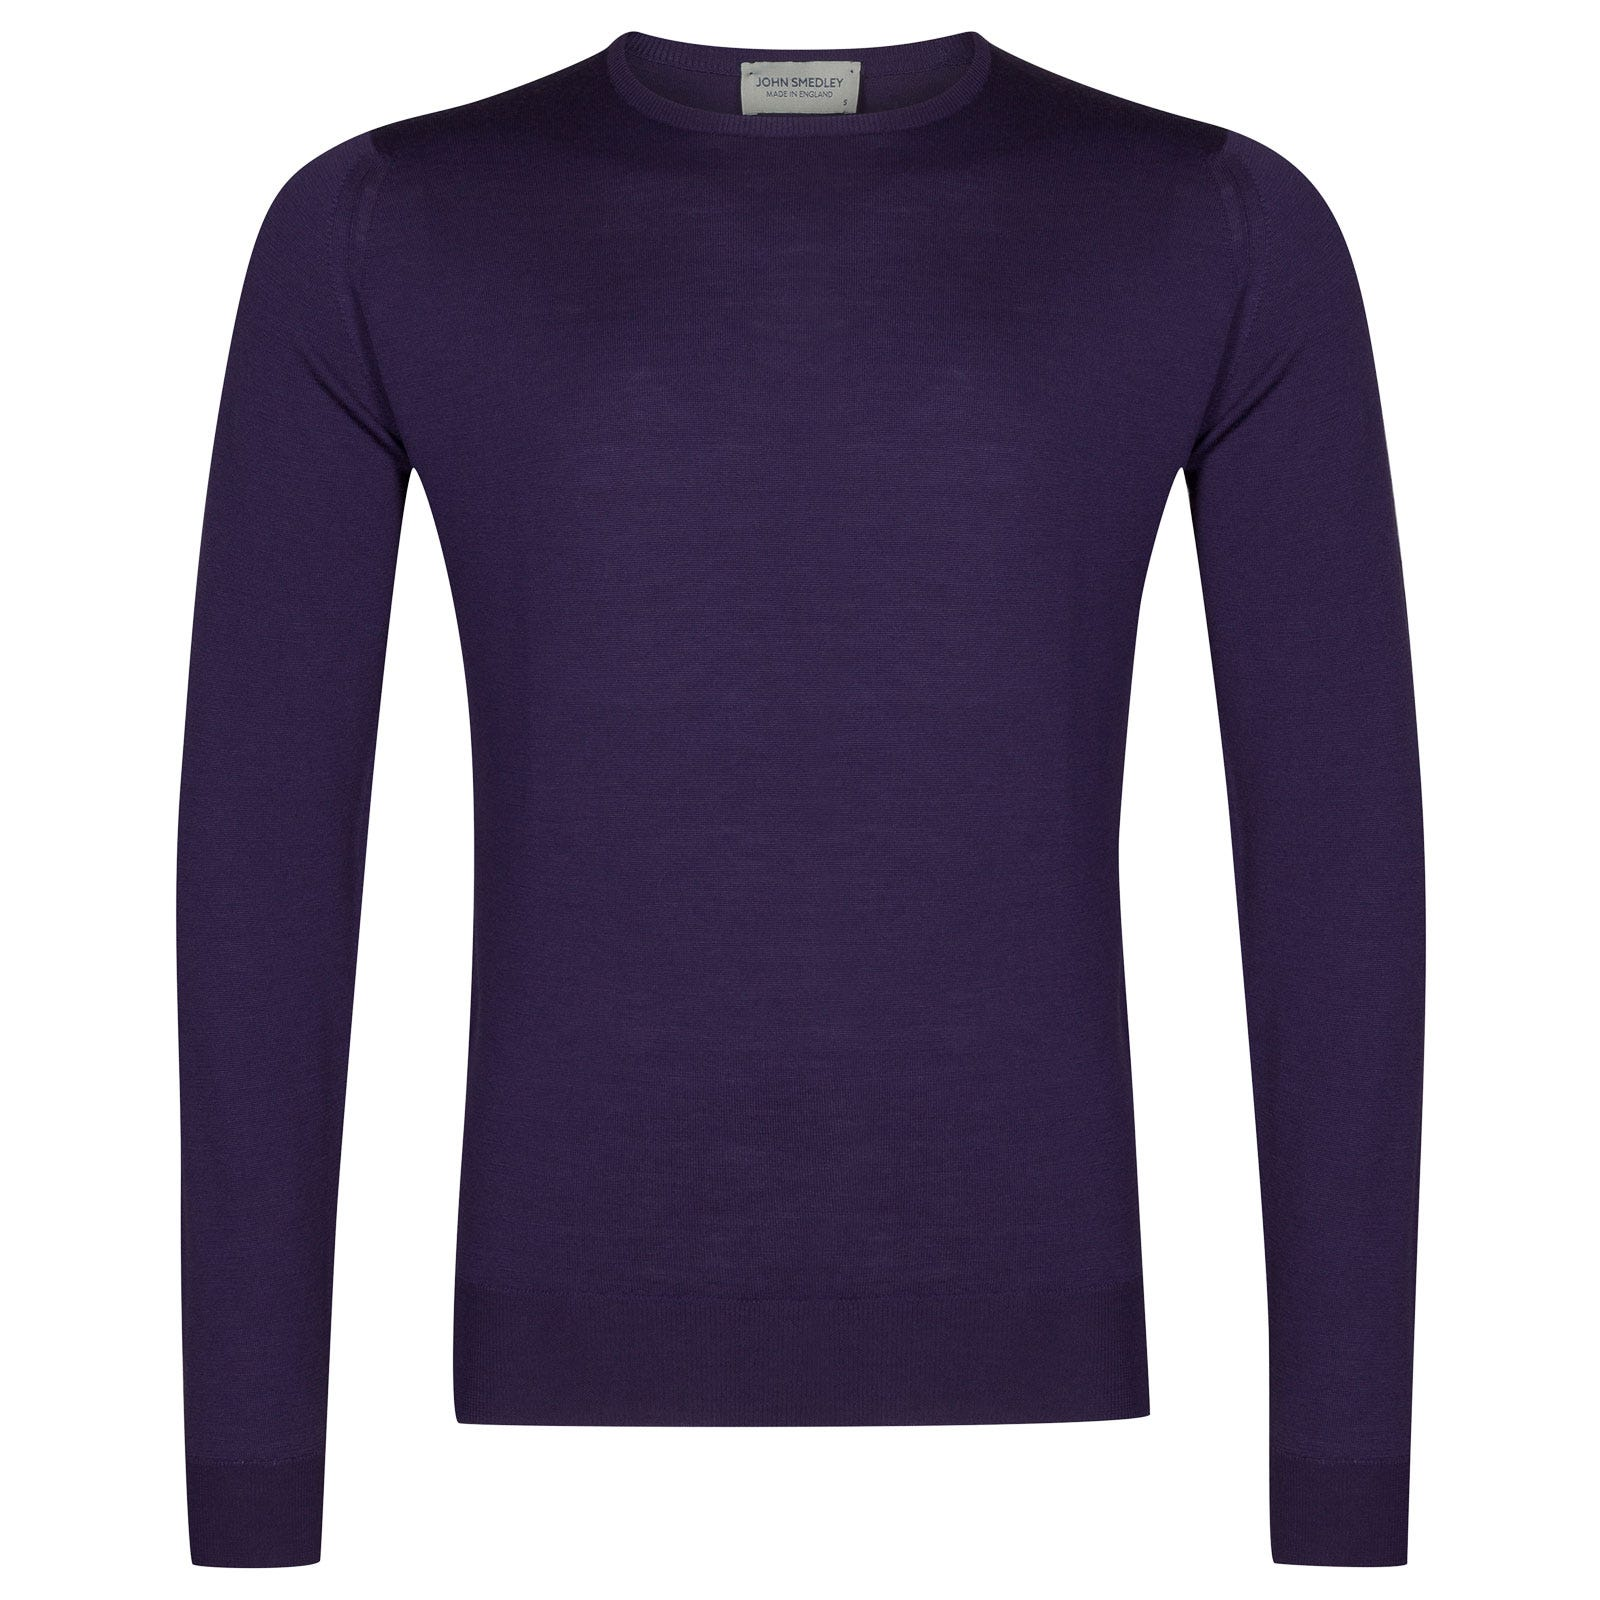 John Smedley lundy Merino Wool Pullover in Elderberry Purple-XL